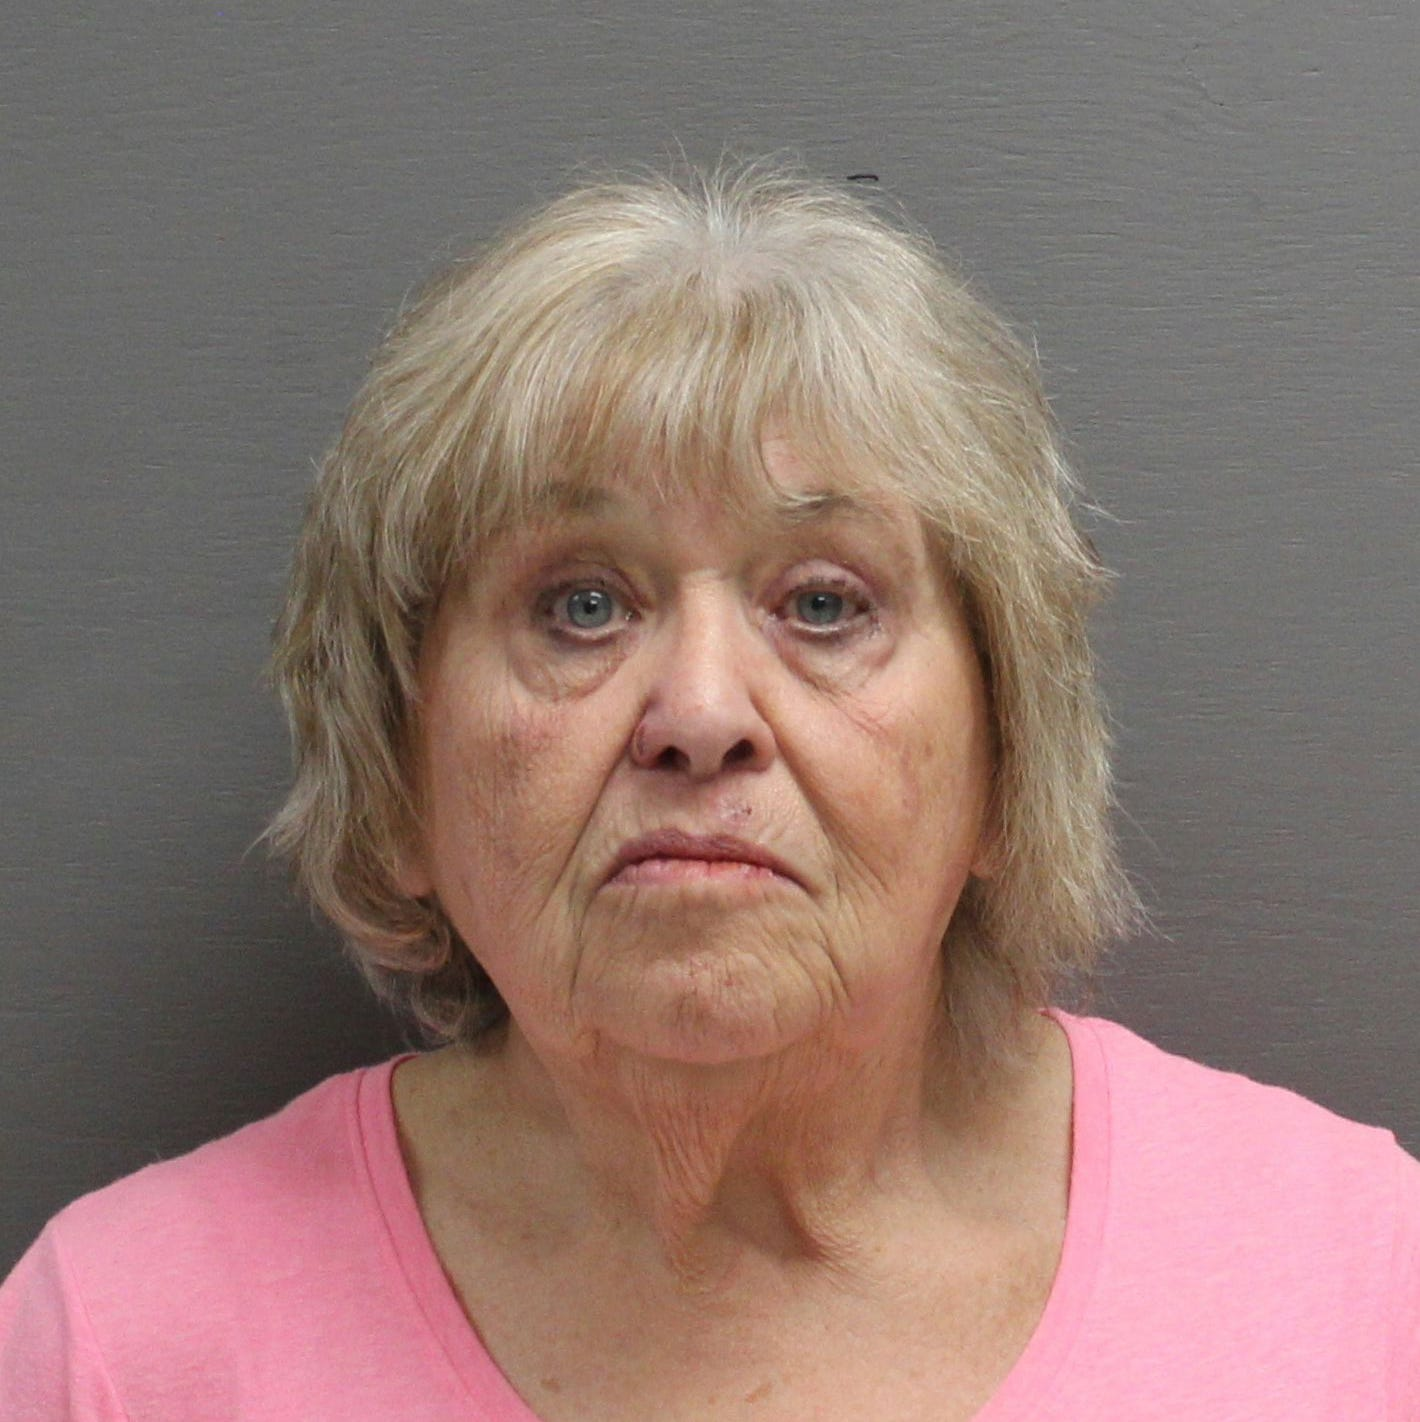 Two dead horses lead to animal cruelty charges for Sun Prairie woman